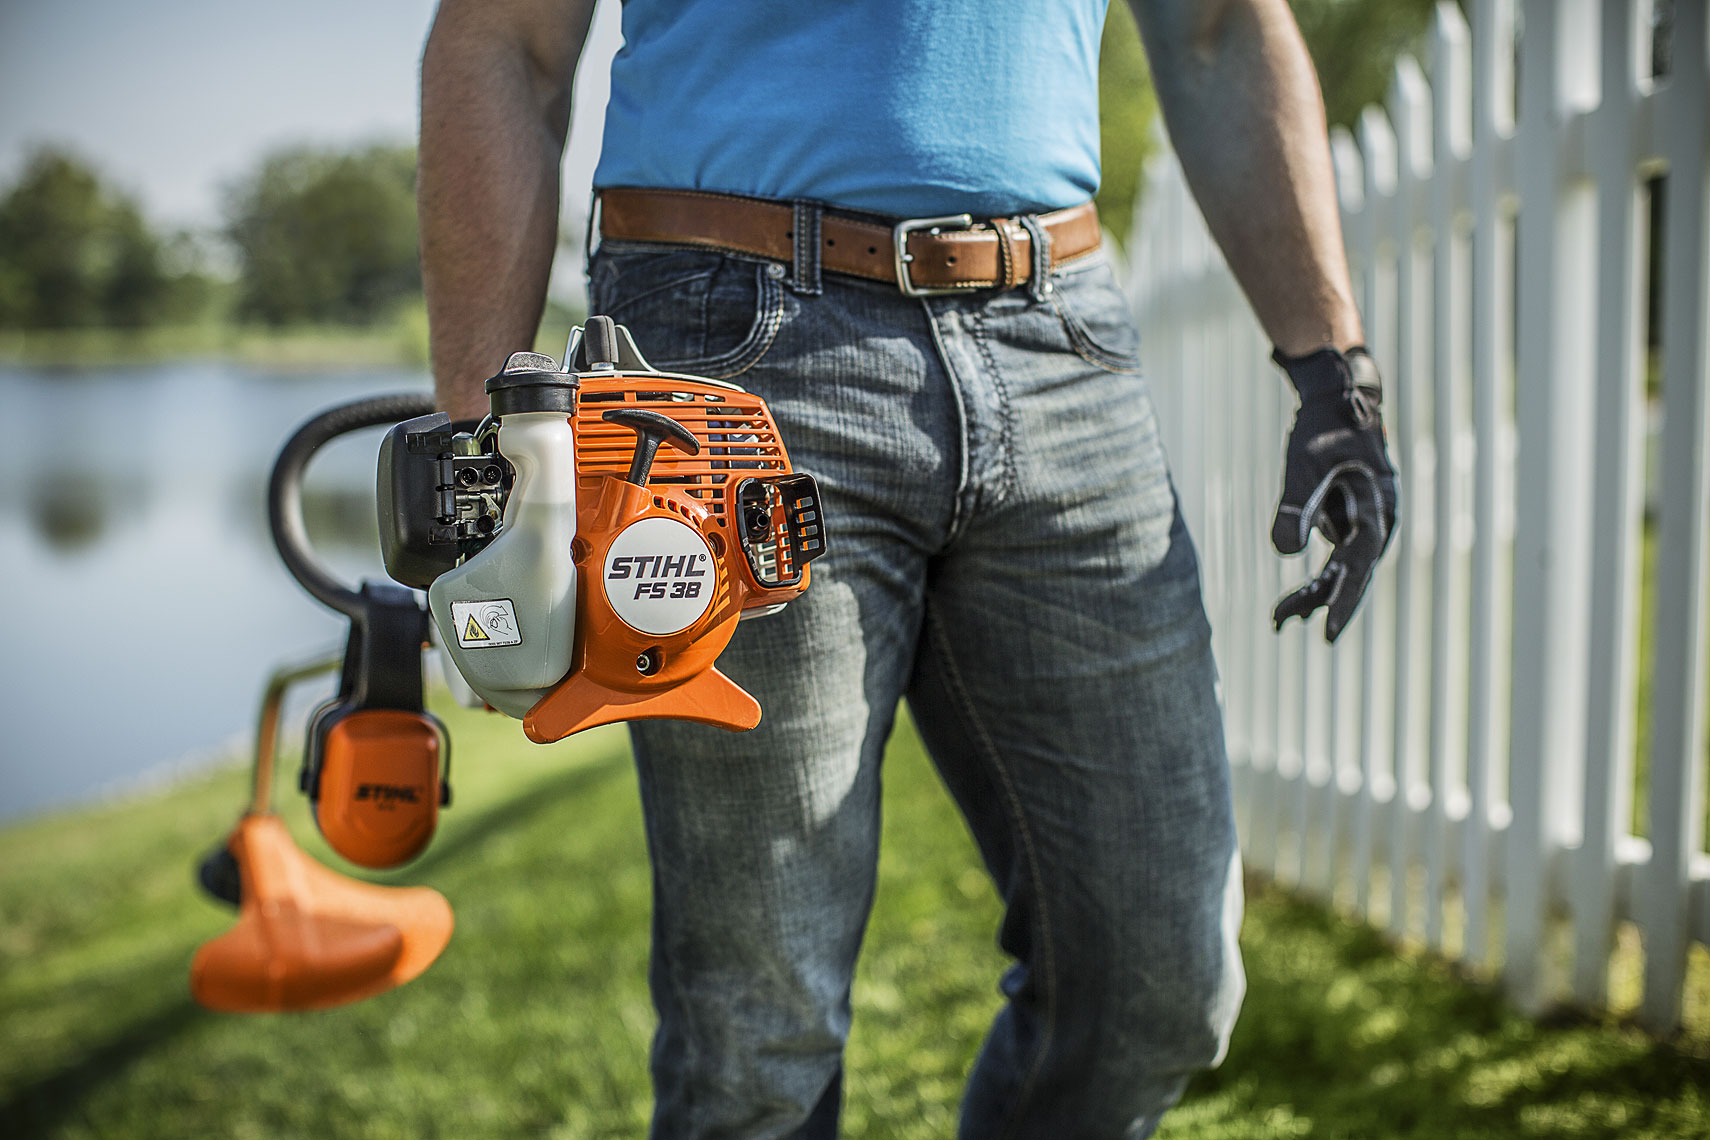 STIHL Trimmer FS 38 | John Fedele Product Photography